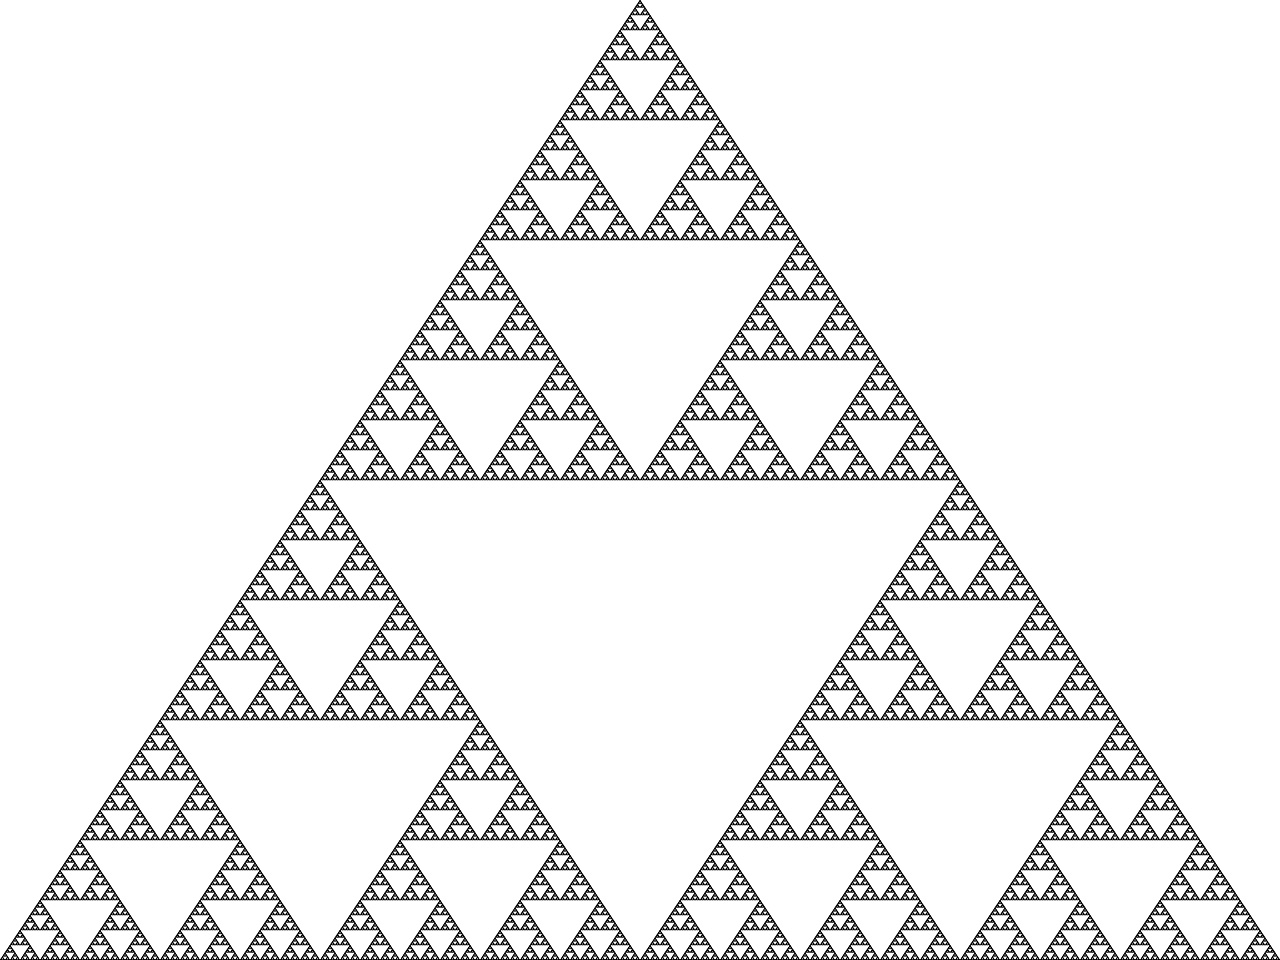 software_sierpinski_image01